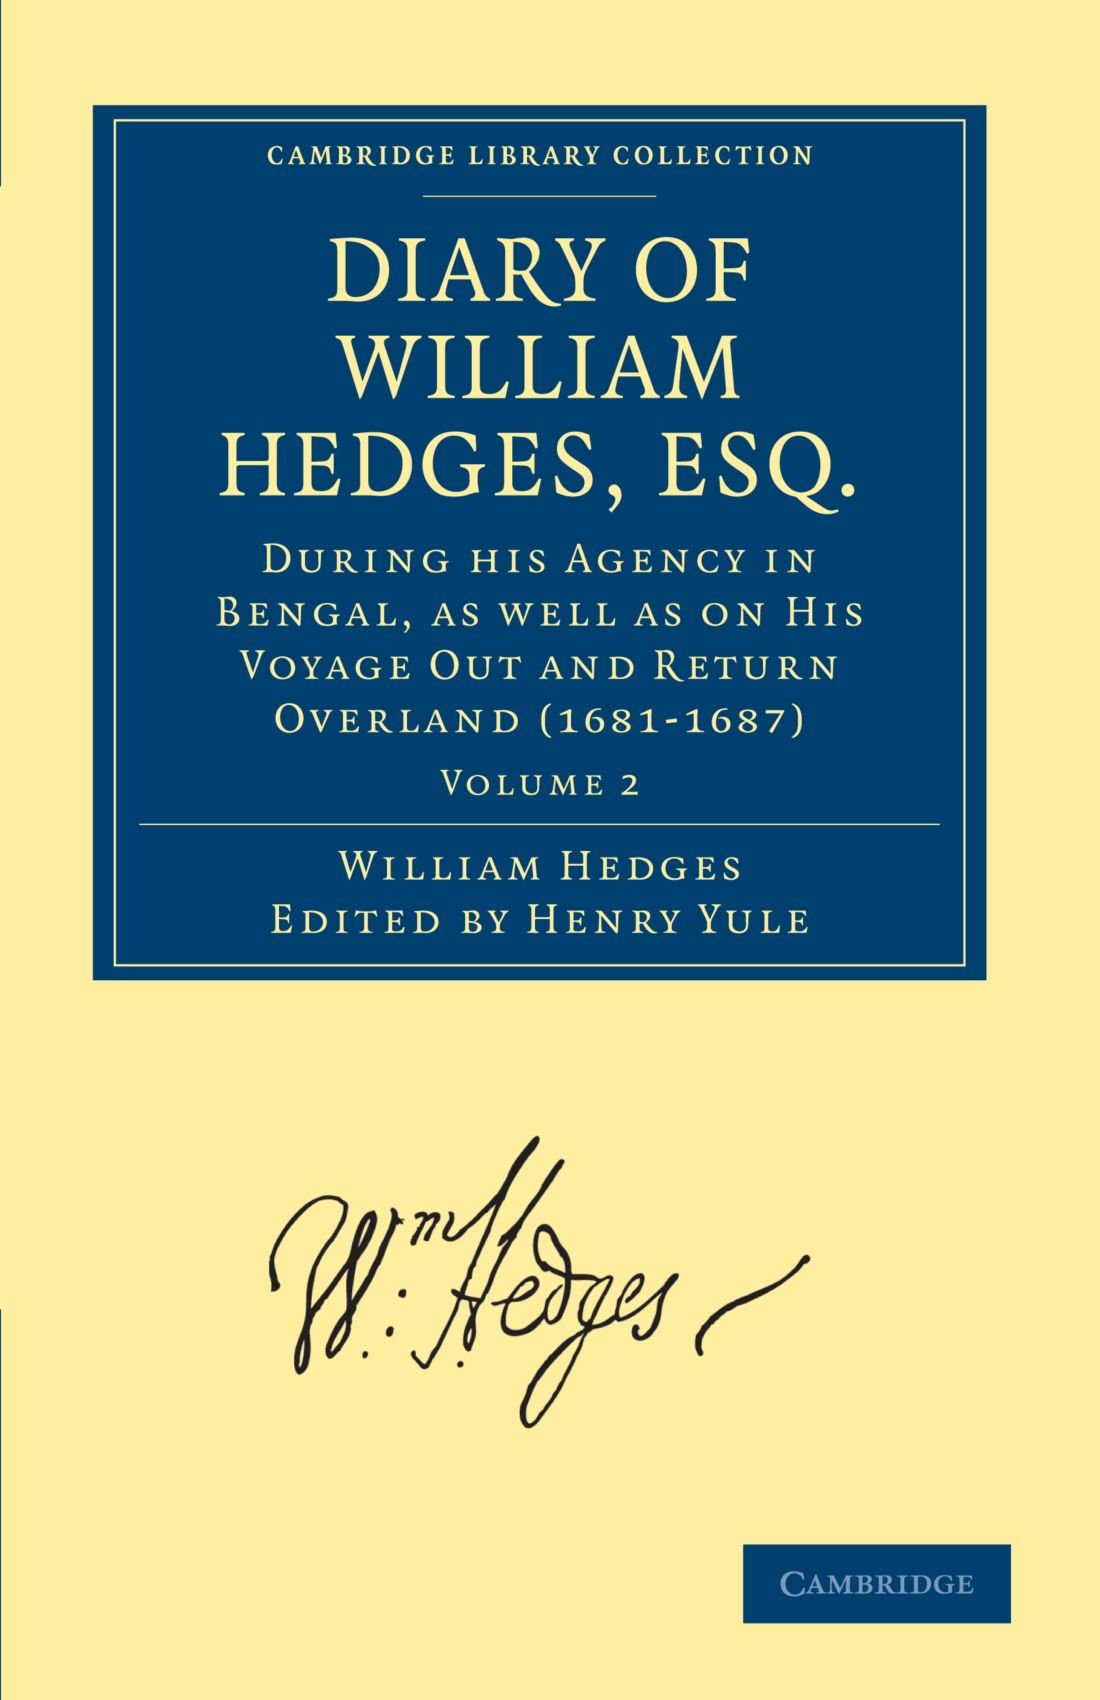 Diary of William Hedges, Esq. (Afterwards Sir William Hedges), During his Agency in Bengal, as well as on His Voyage Out and Return Overland ... Library Collection - Hakluyt First Series) PDF